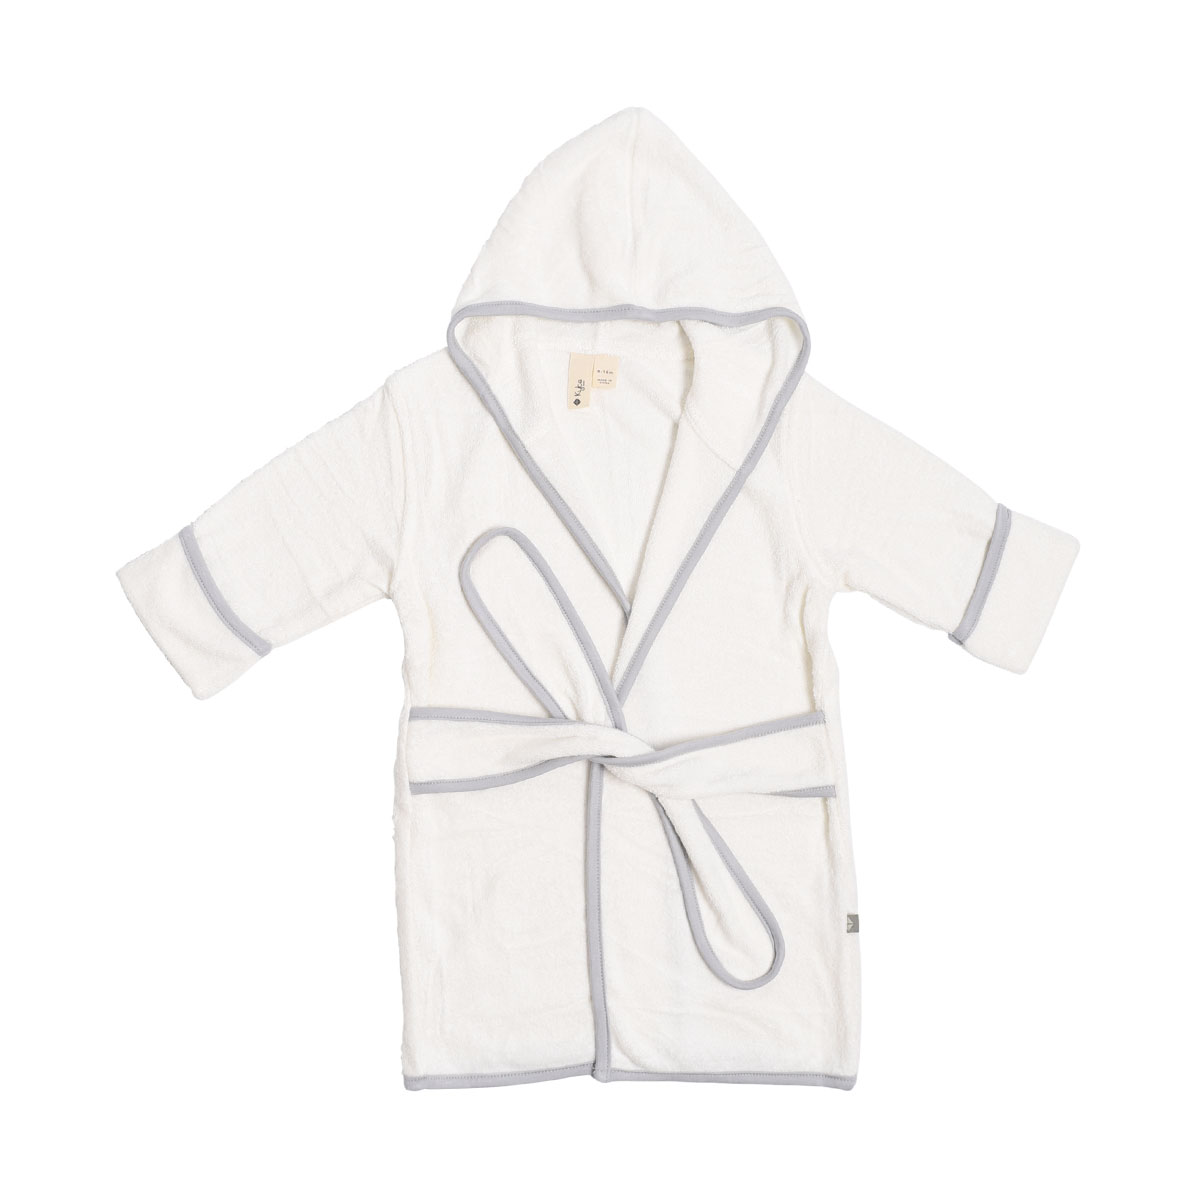 Kyte Baby Hooded Bamboo Terry Bath Robe in Cloud White with Storm Grey